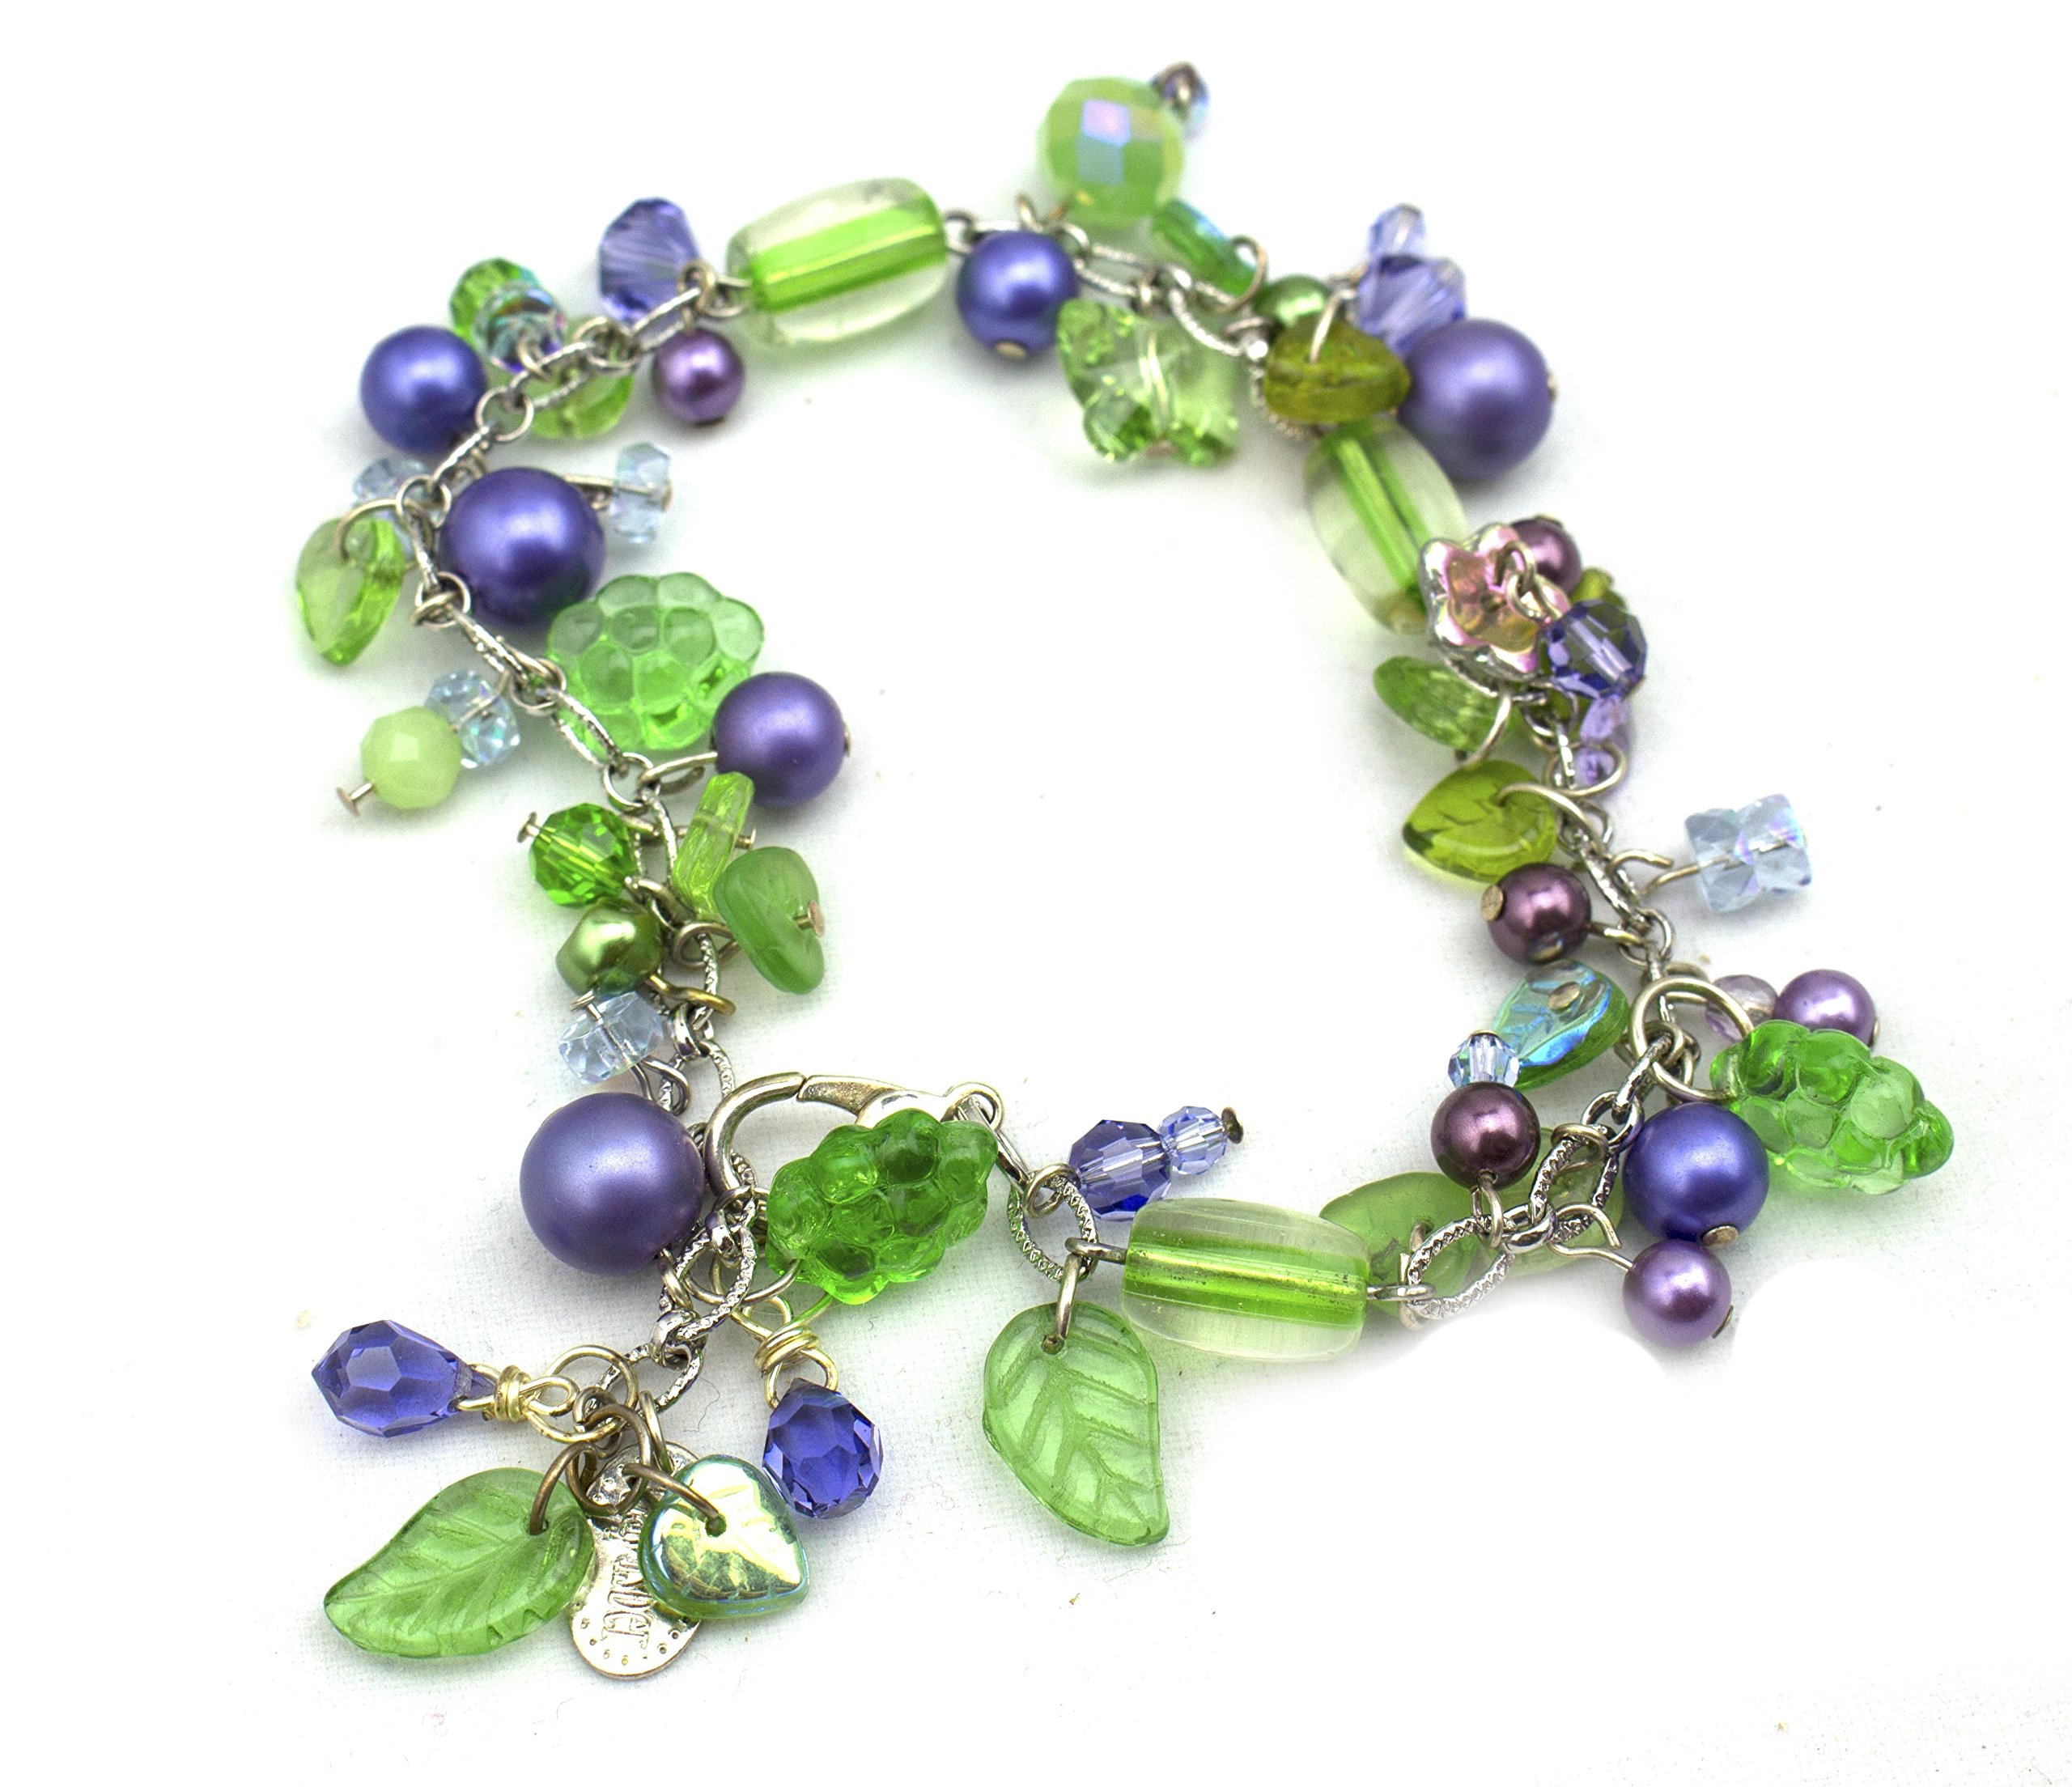 Grape Vine Bracelet Swarovski Glass Leaves, Small Purple Pearls, Vintage Grapes + Adjustable HandMade USA by Gay Isber Design